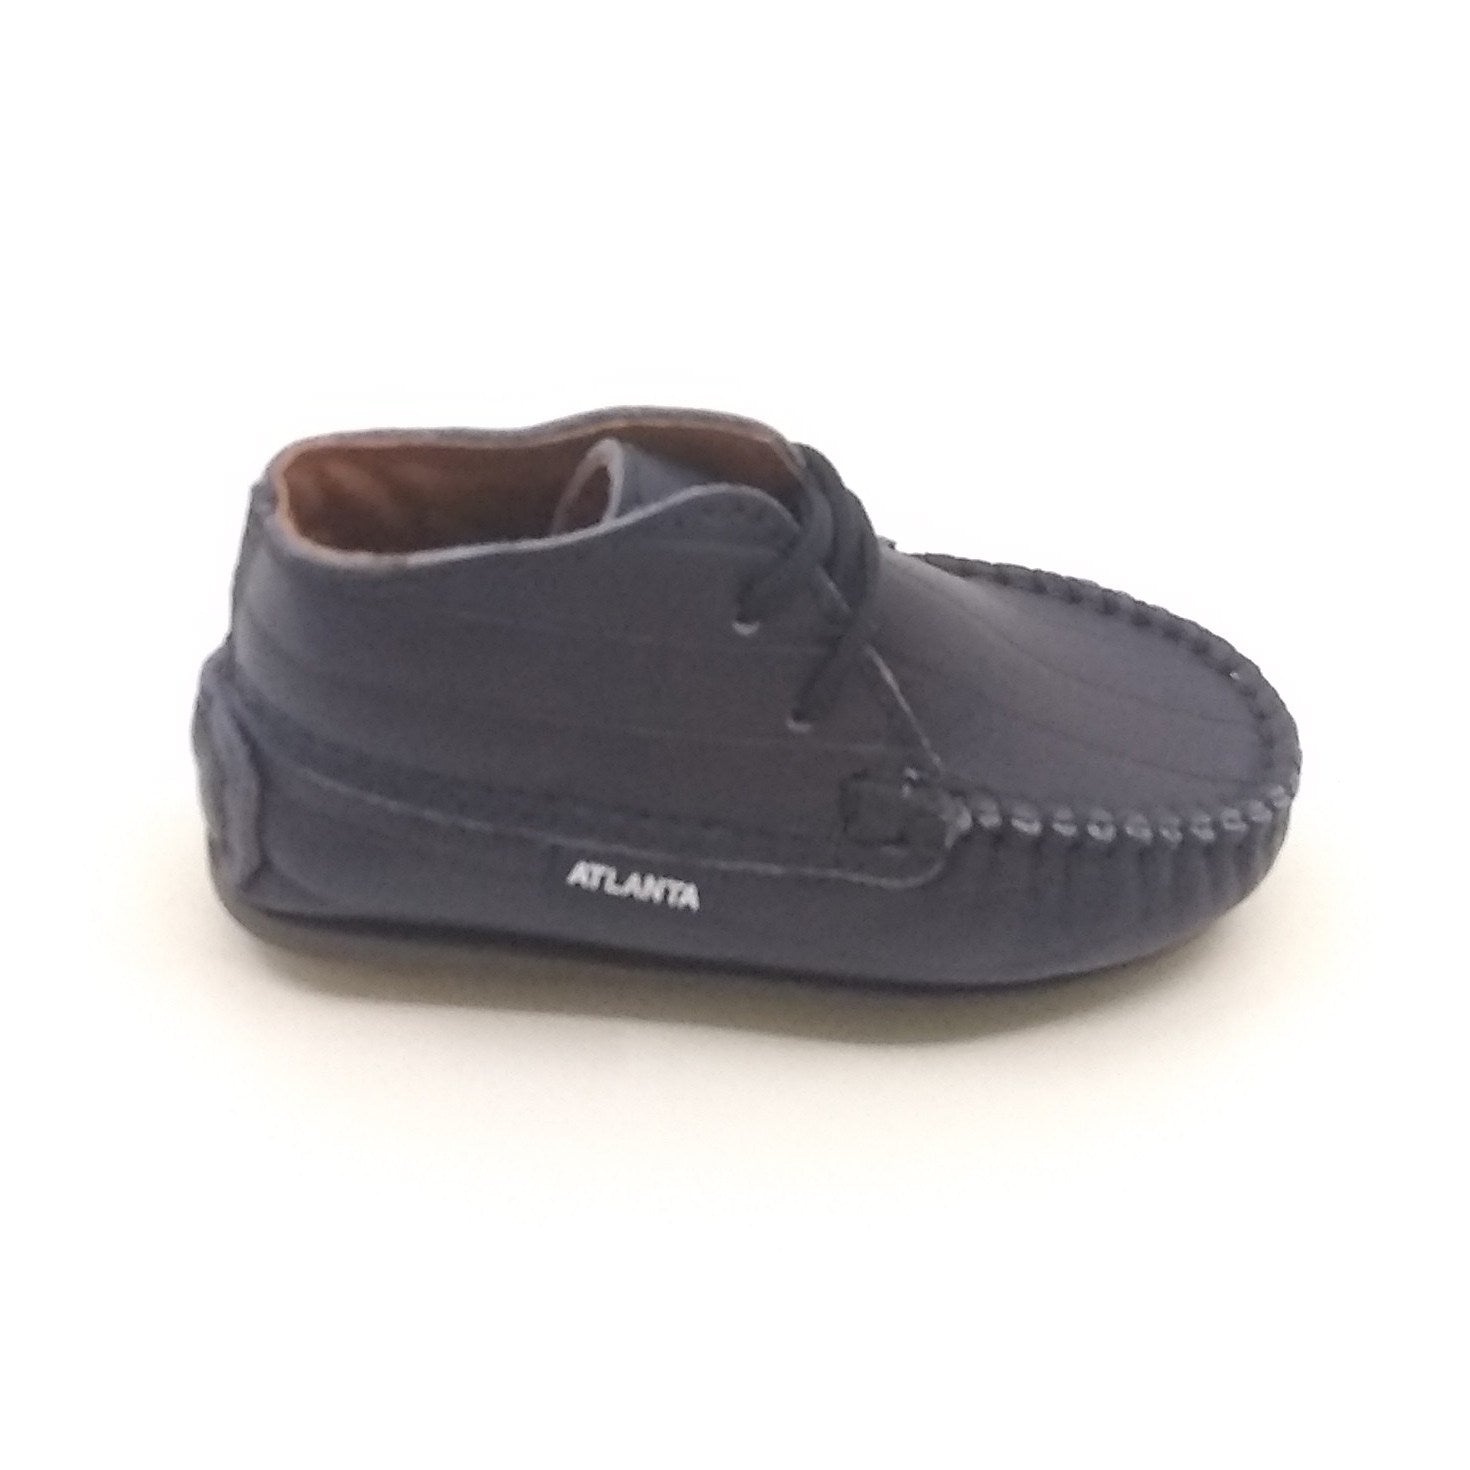 Atlanta Mocassin Navy Laceup First Shoe